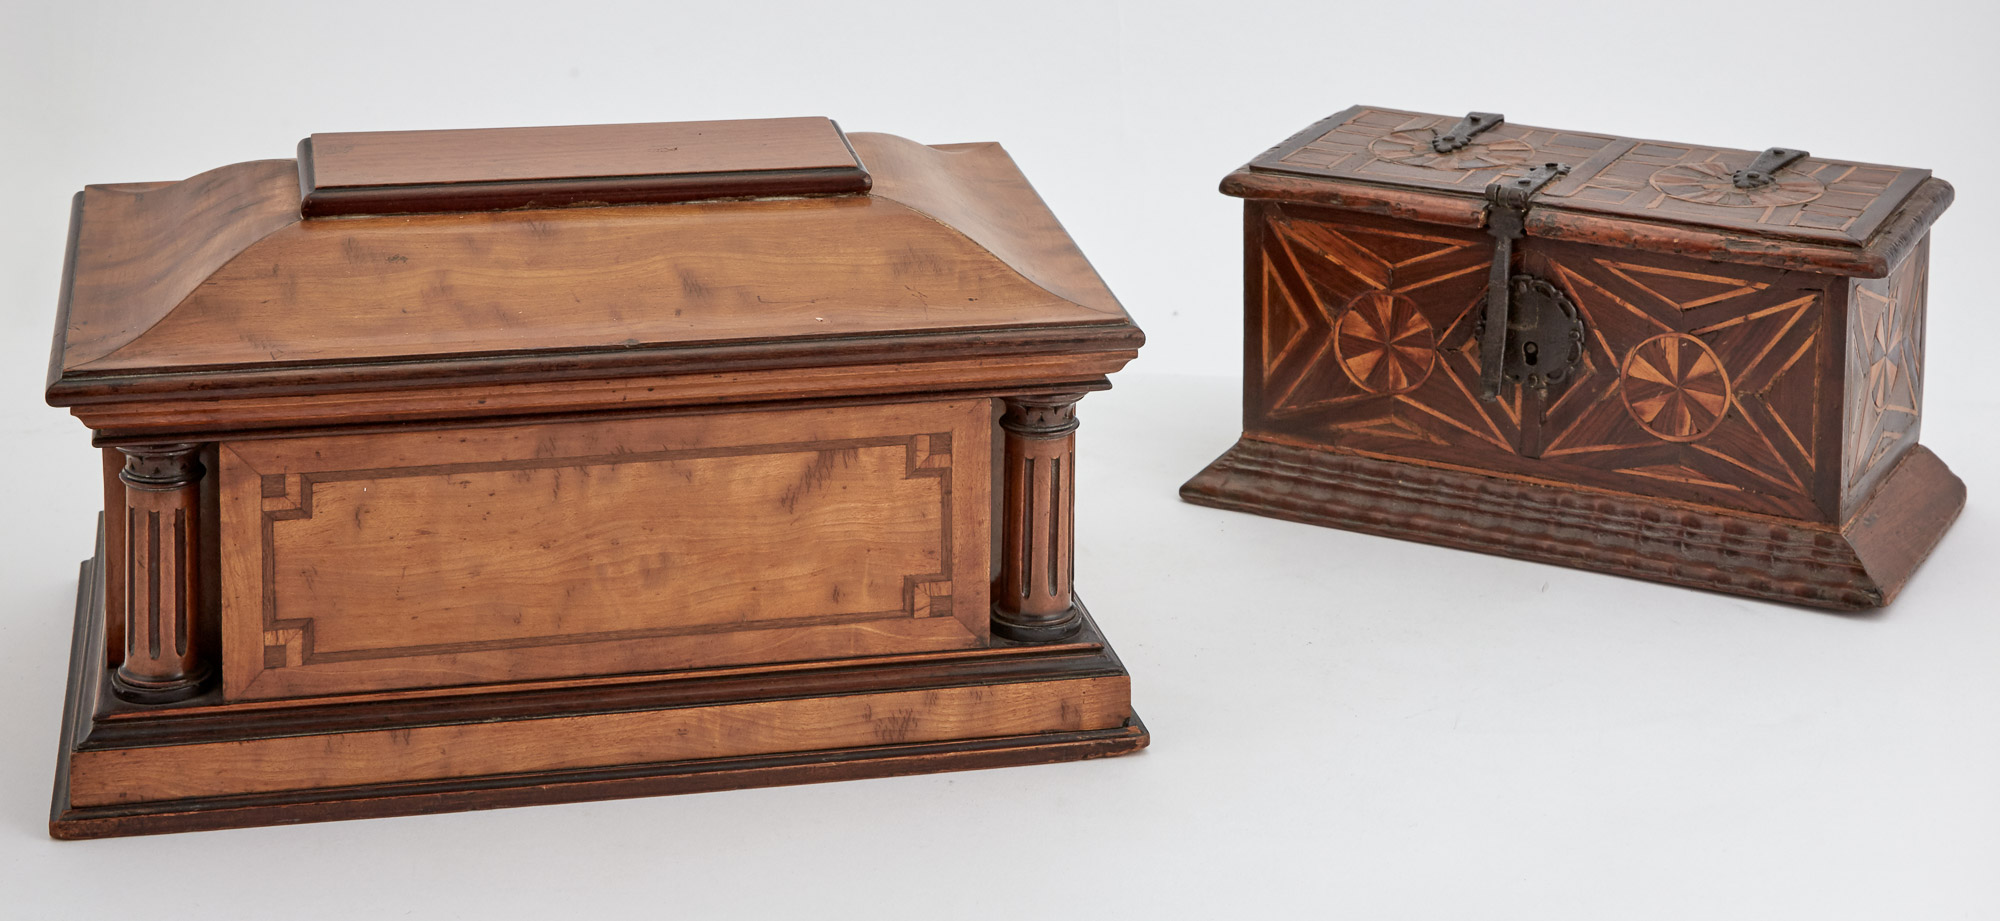 Lot image - Italian Neoclassical Style Iron-Mounted Parquetry Inlaid Walnut Box